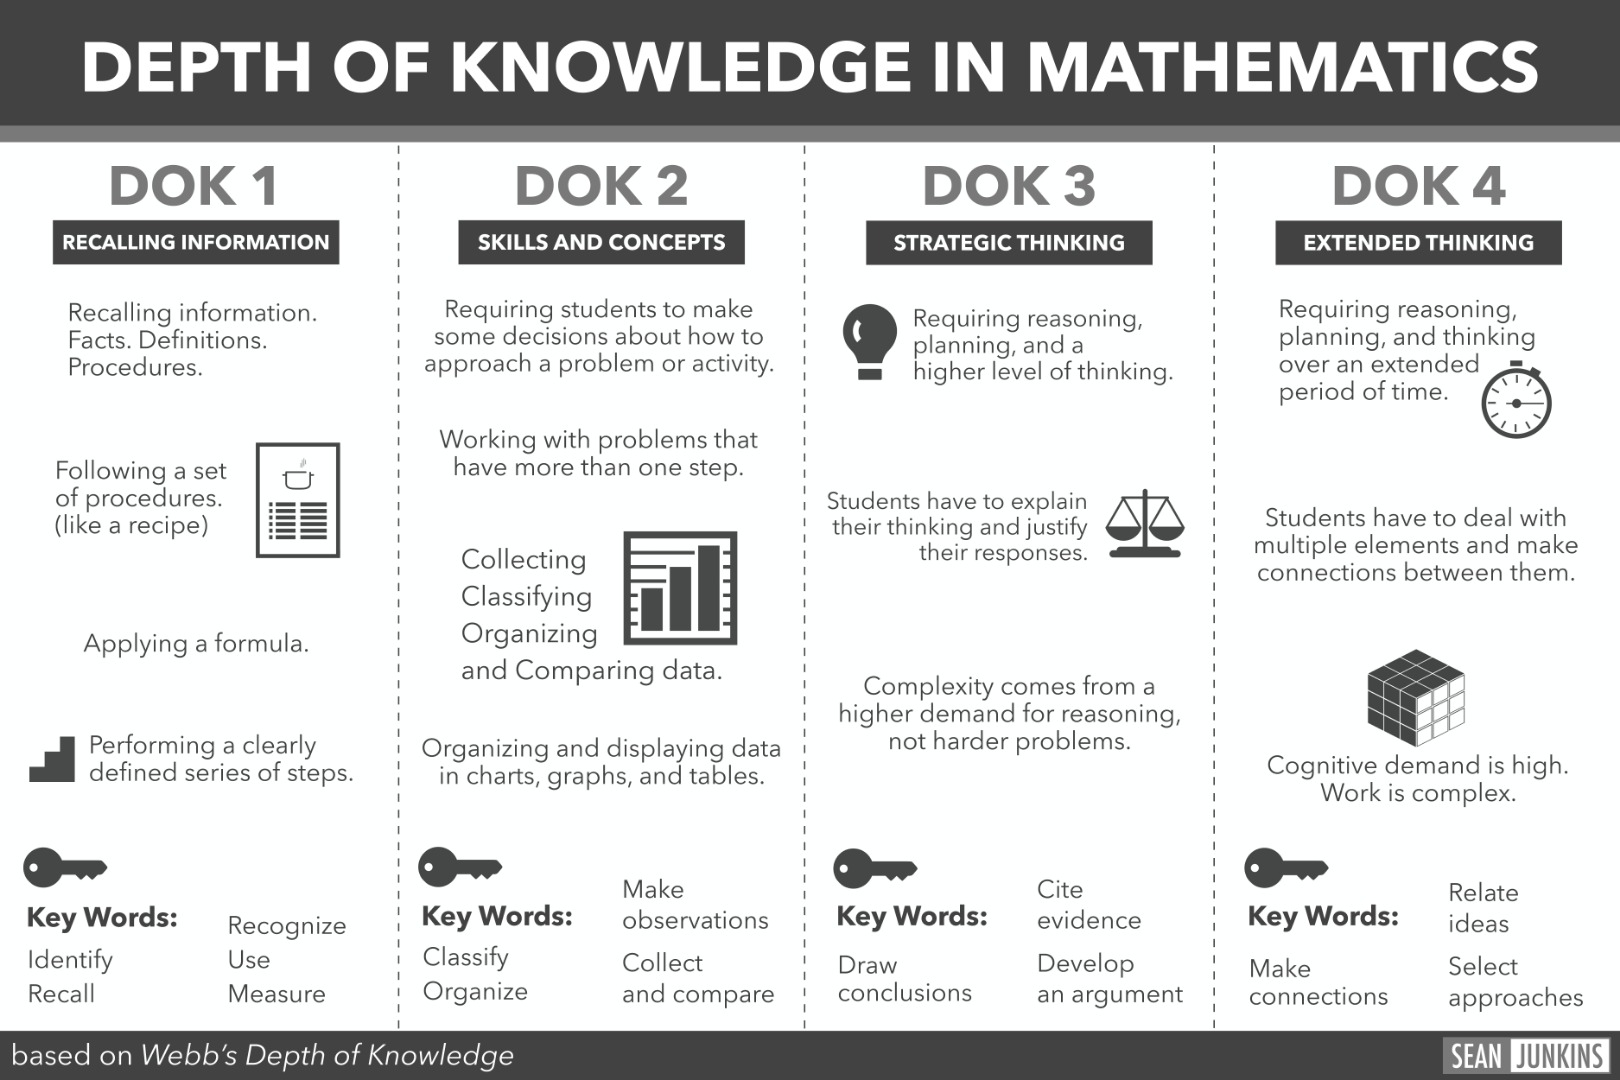 DOK in Math